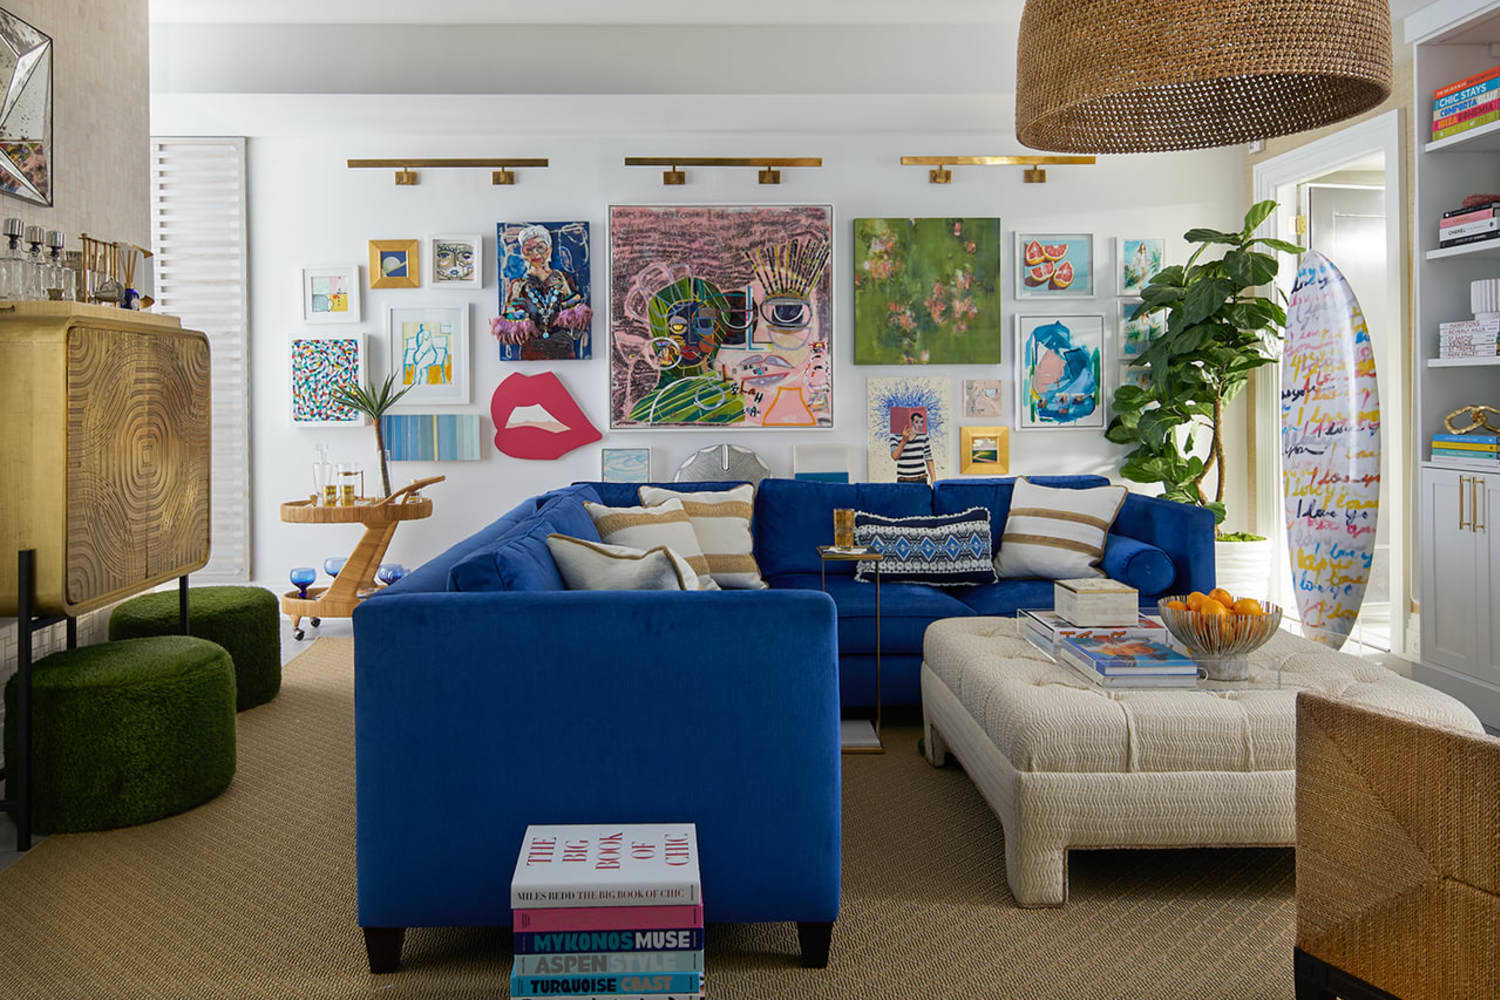 Small Space Decorating Tips, According to Designers